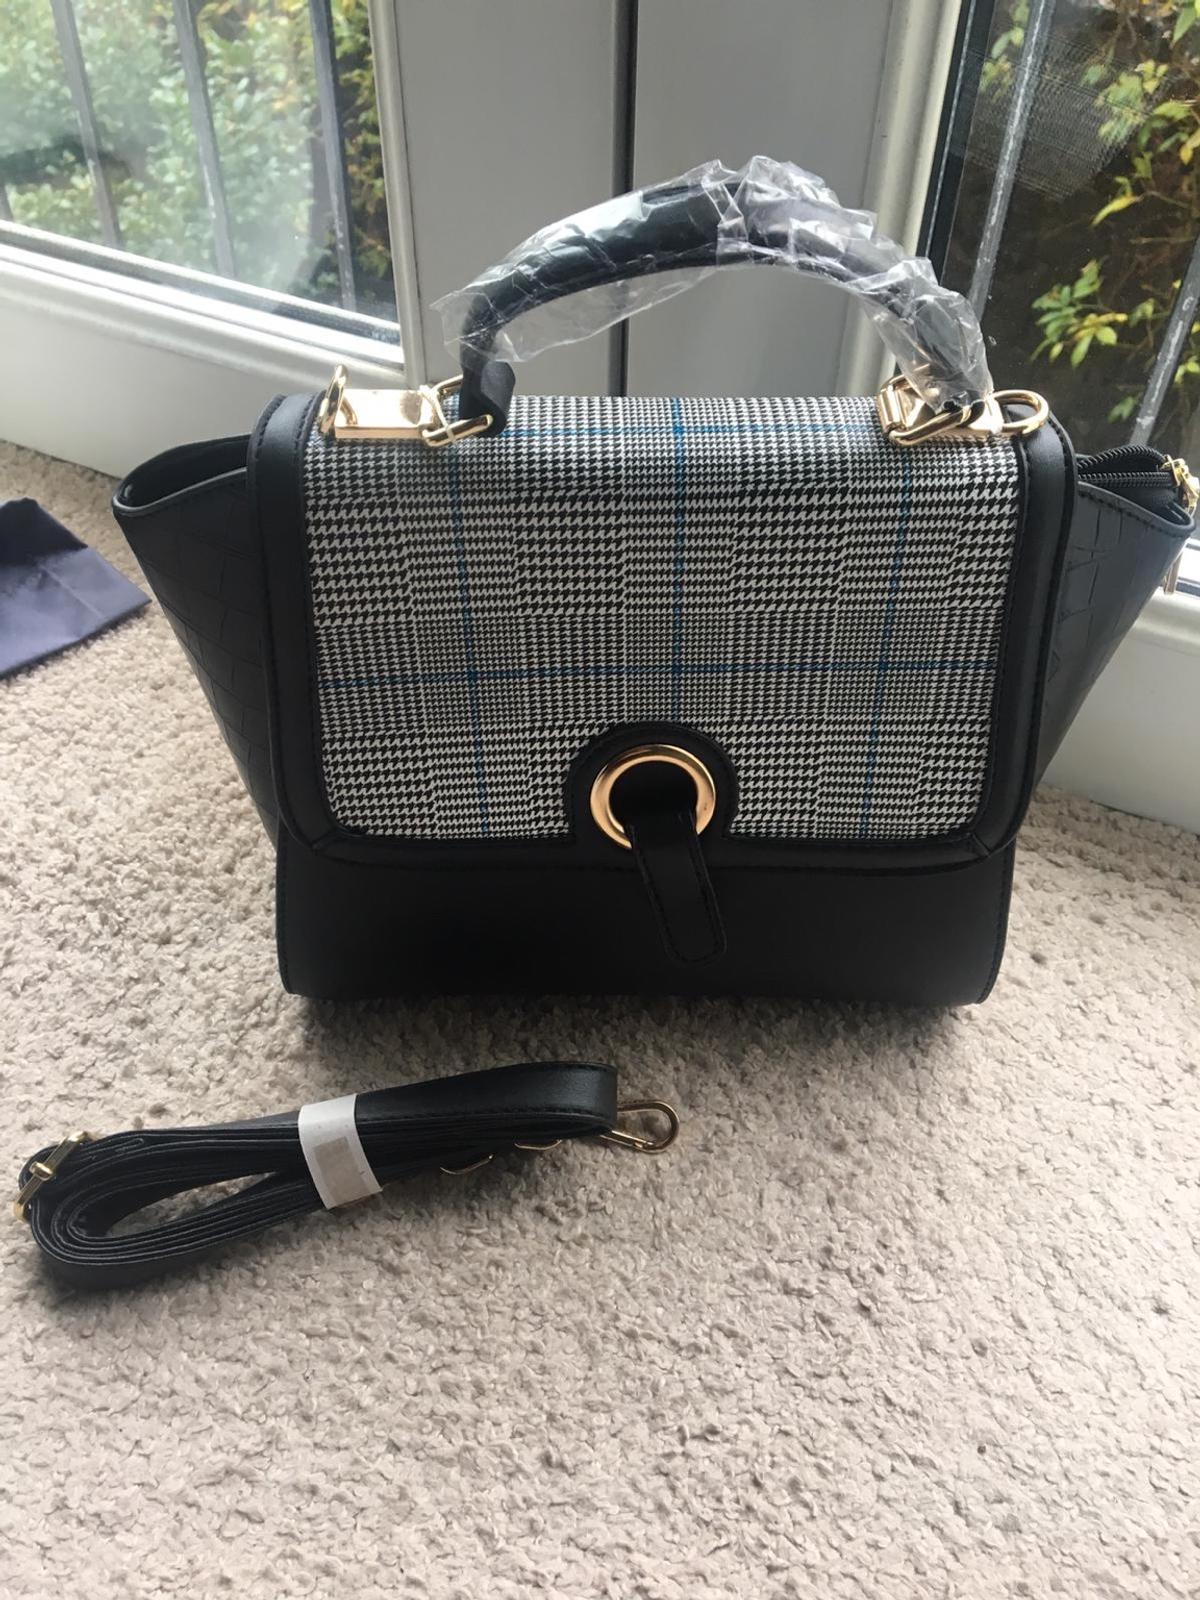 Handbags bargain at £9 each one I do not save no tym wasters will deliver for small petrol price brandnew we do not lower our prices pls do not ask thankyou